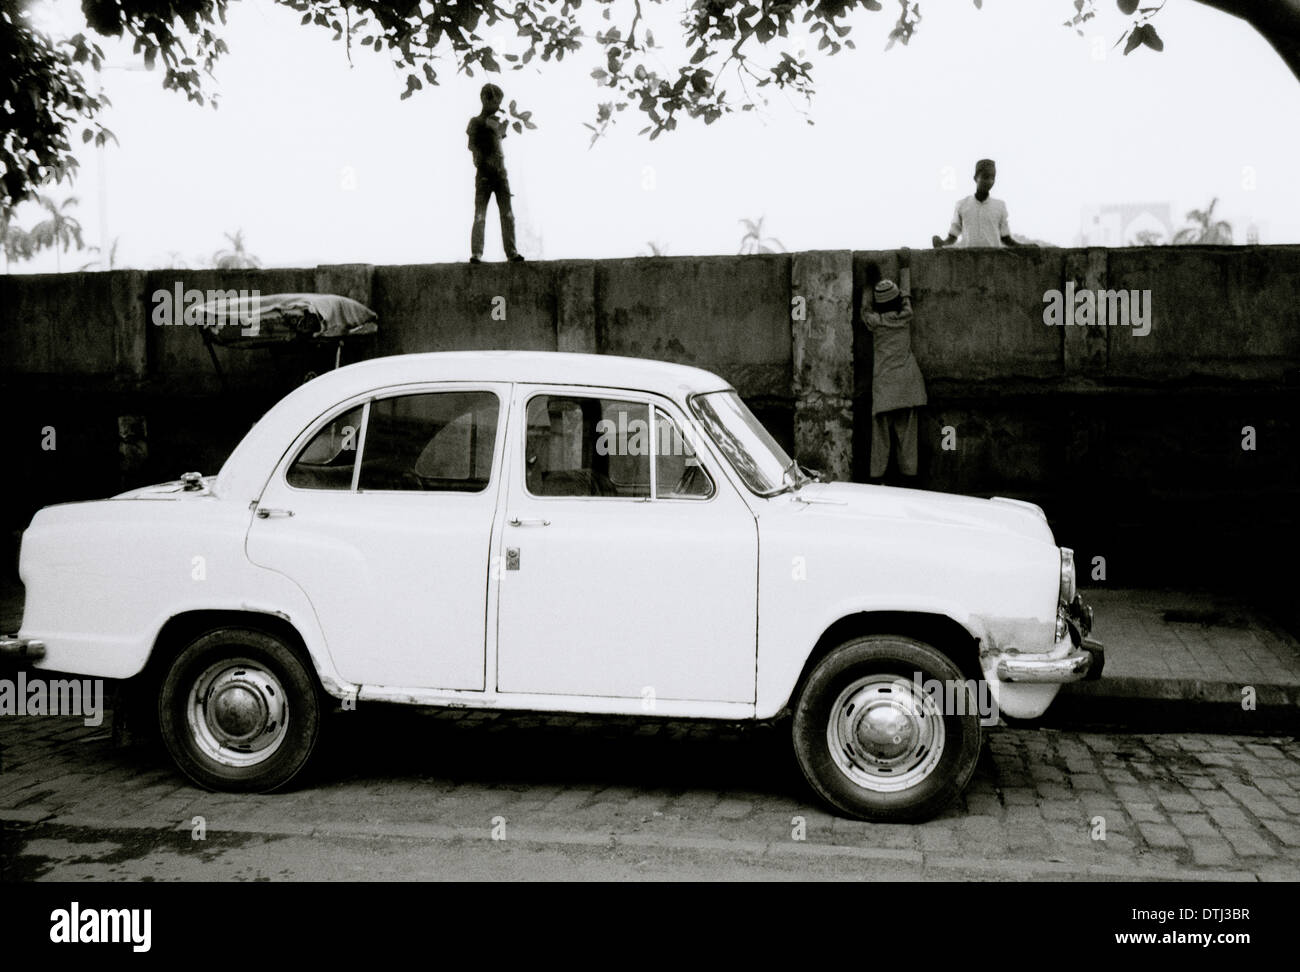 Hindustan Ambassador car in Kolkata Calcutta in West Bengal in India in South Asia. Surreal Surrealism Cars Transport History Indian Travel - Stock Image